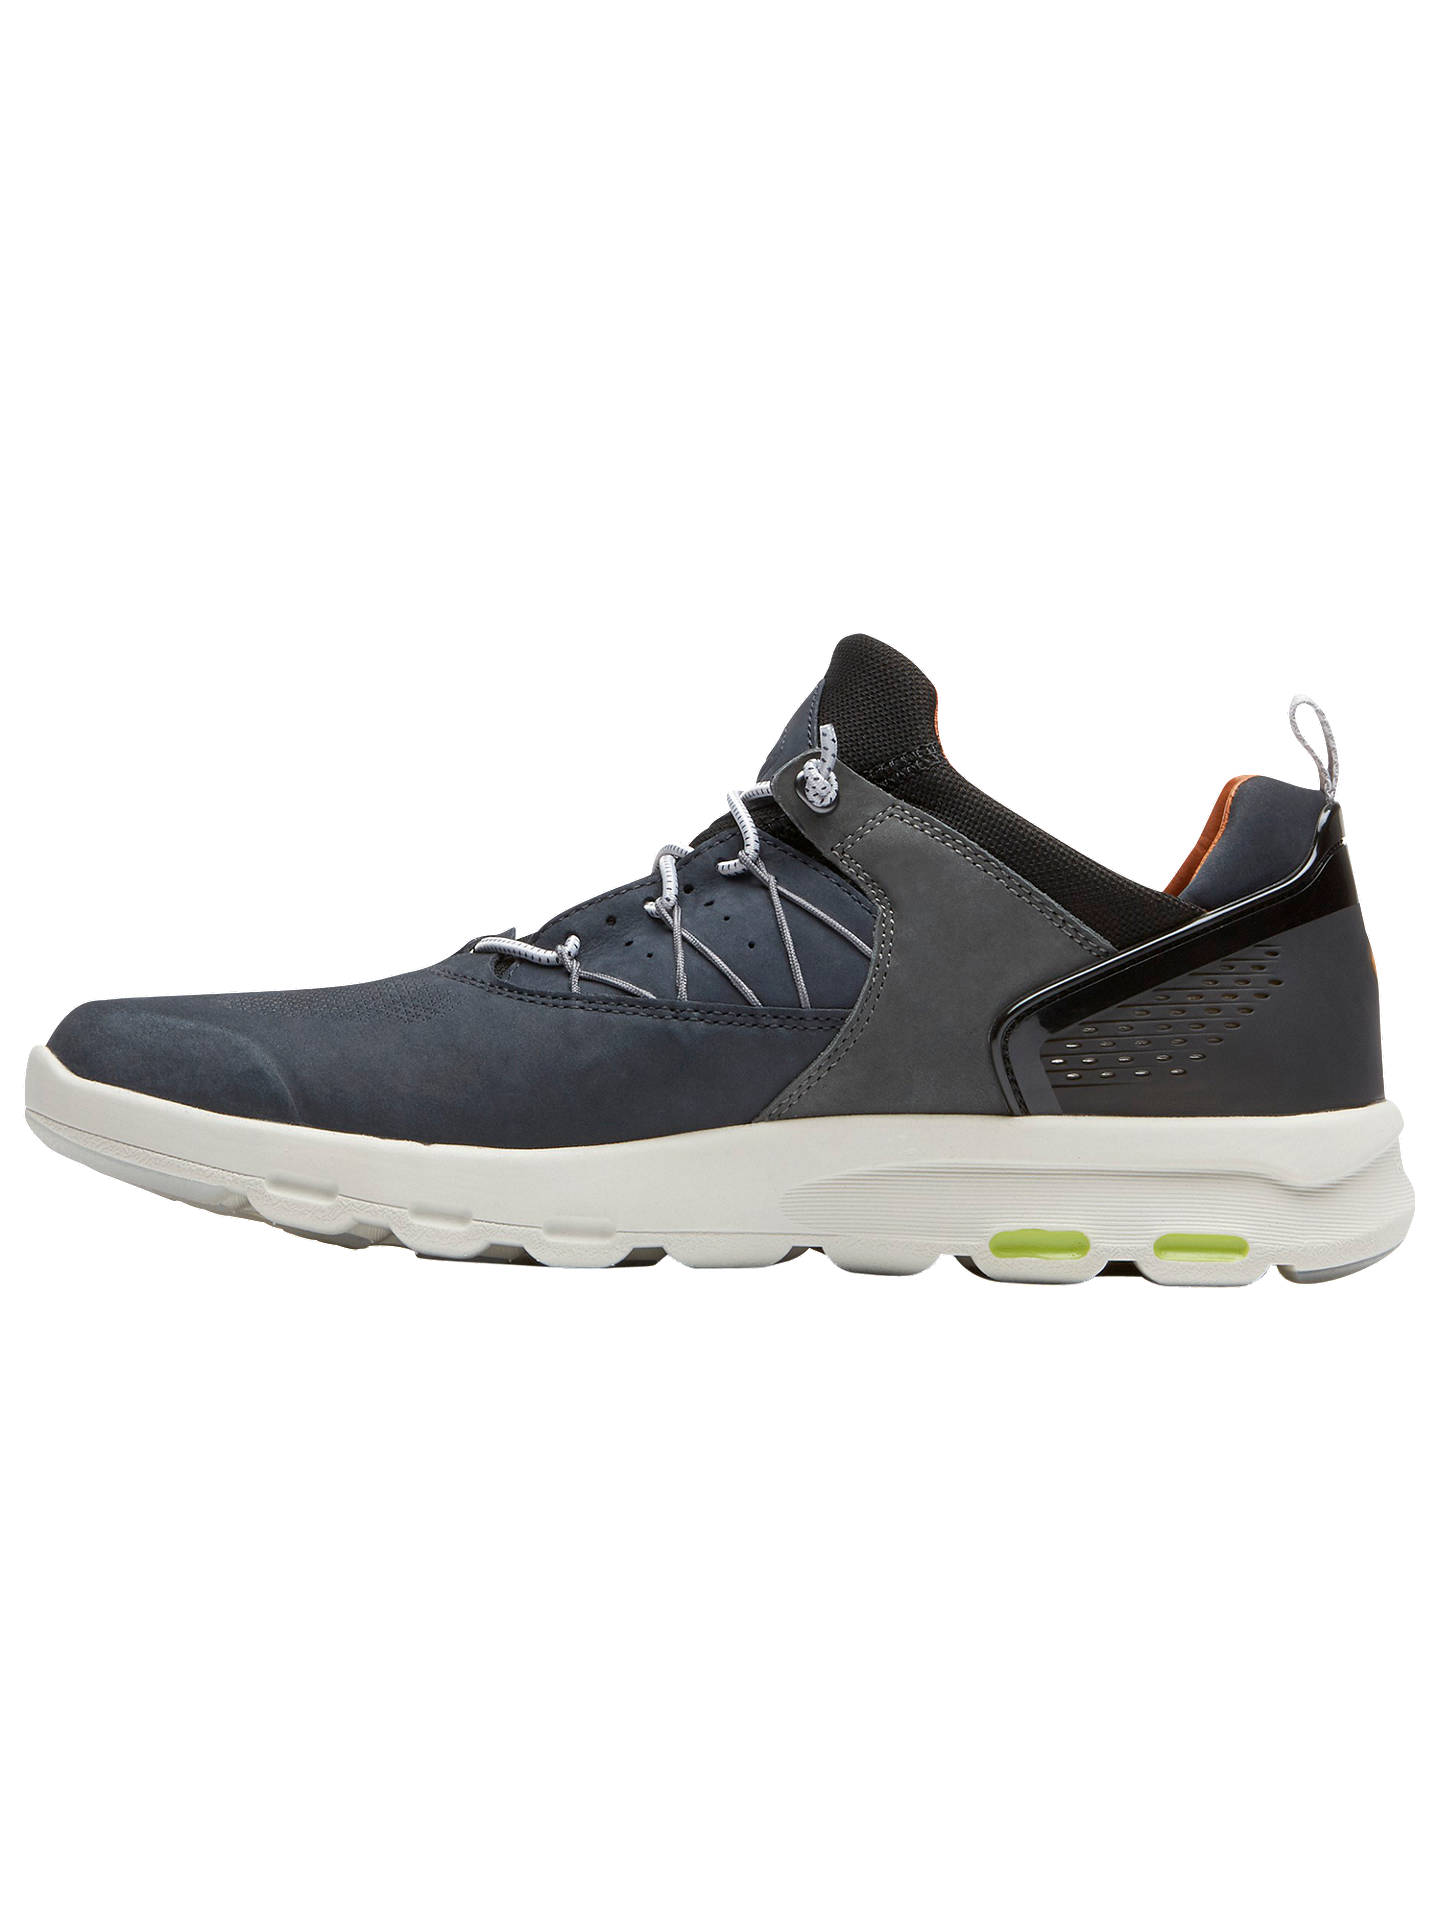 Buy Rockport Lets Walk Bungee Trainers, Blue, 10 Online at johnlewis.com